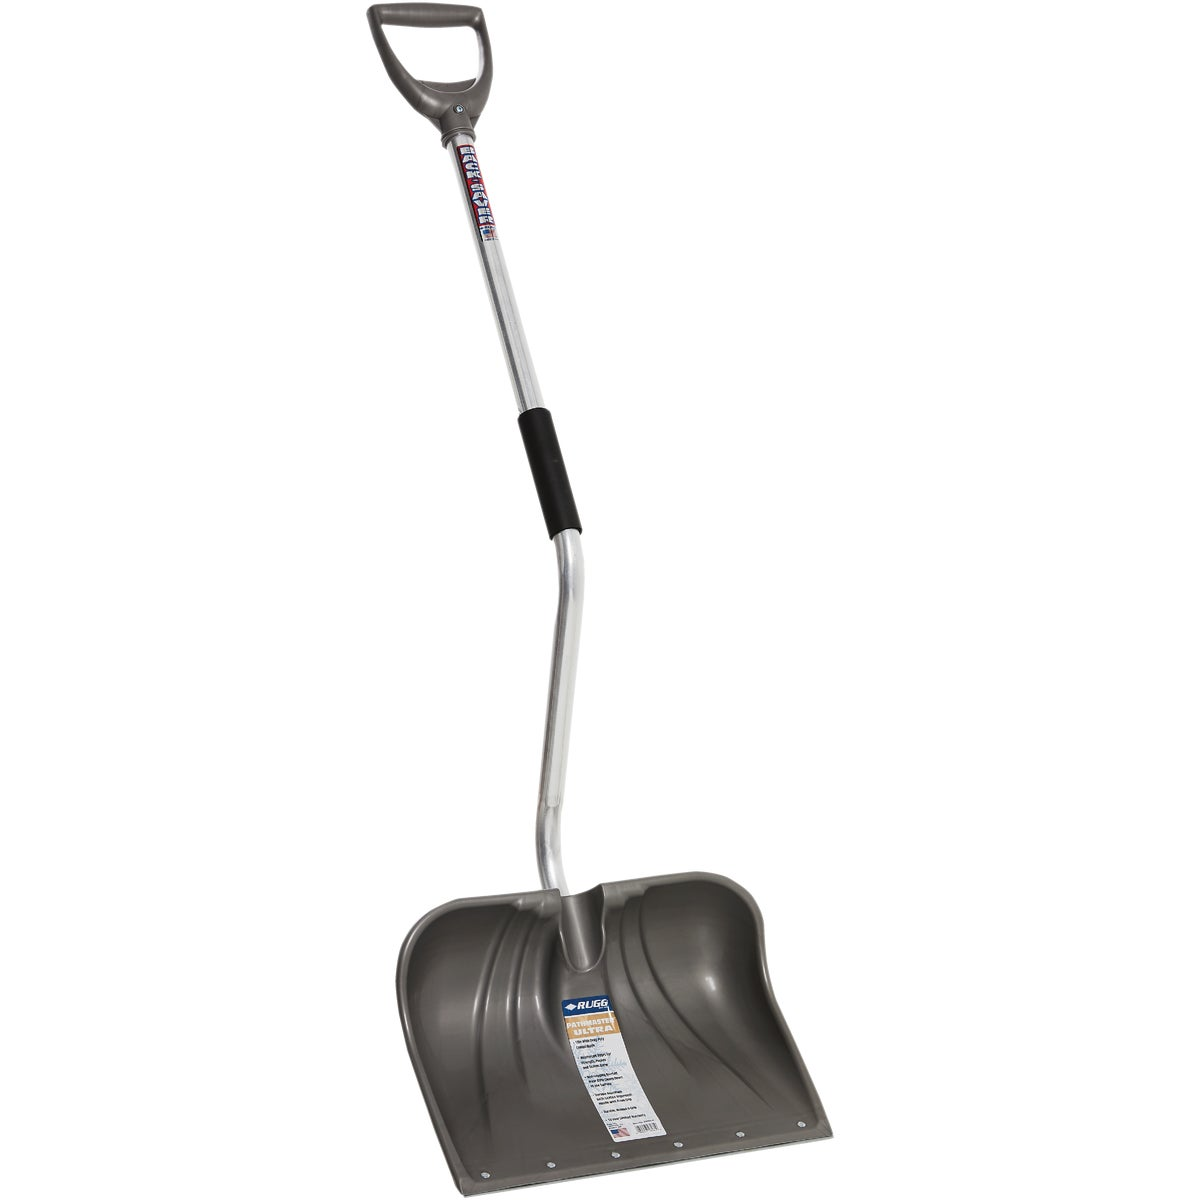 BENT HANDLE SNOW SHOVEL